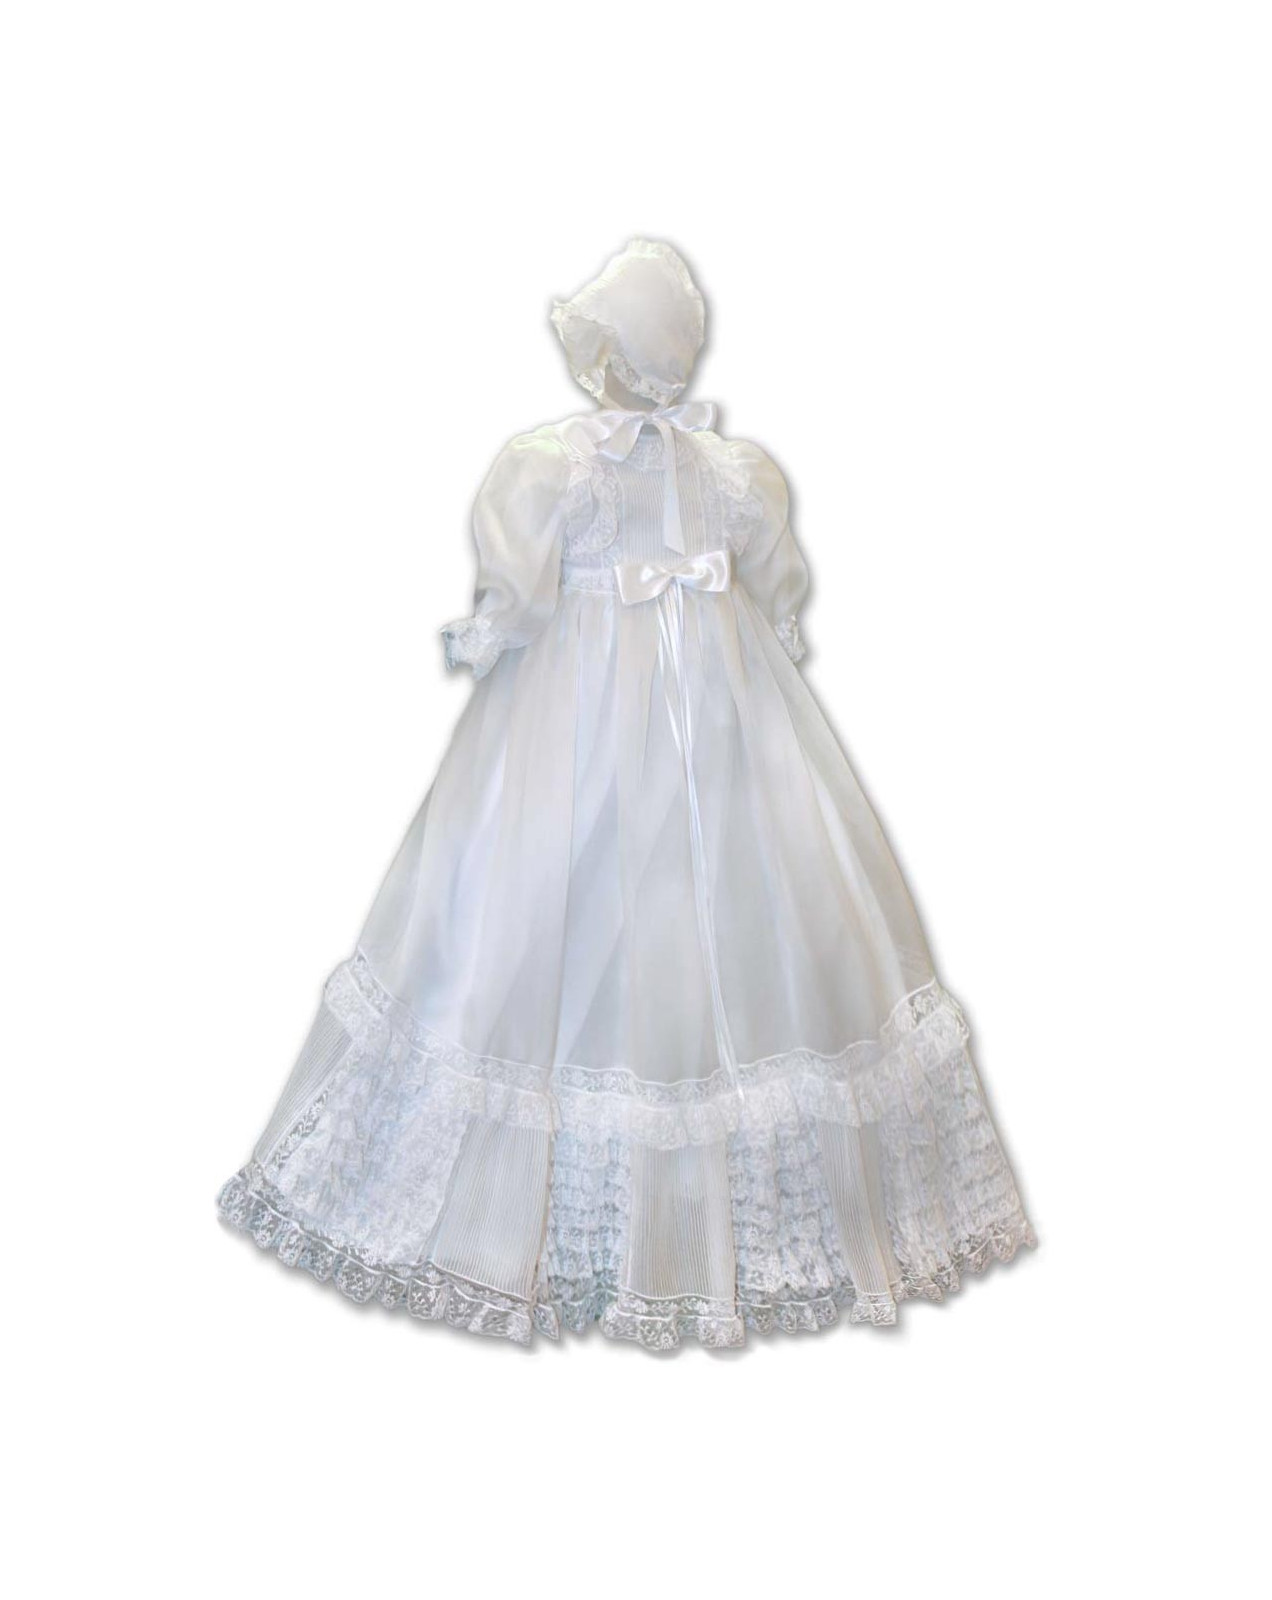 Anemone magnificent Valancienne laces christening gown